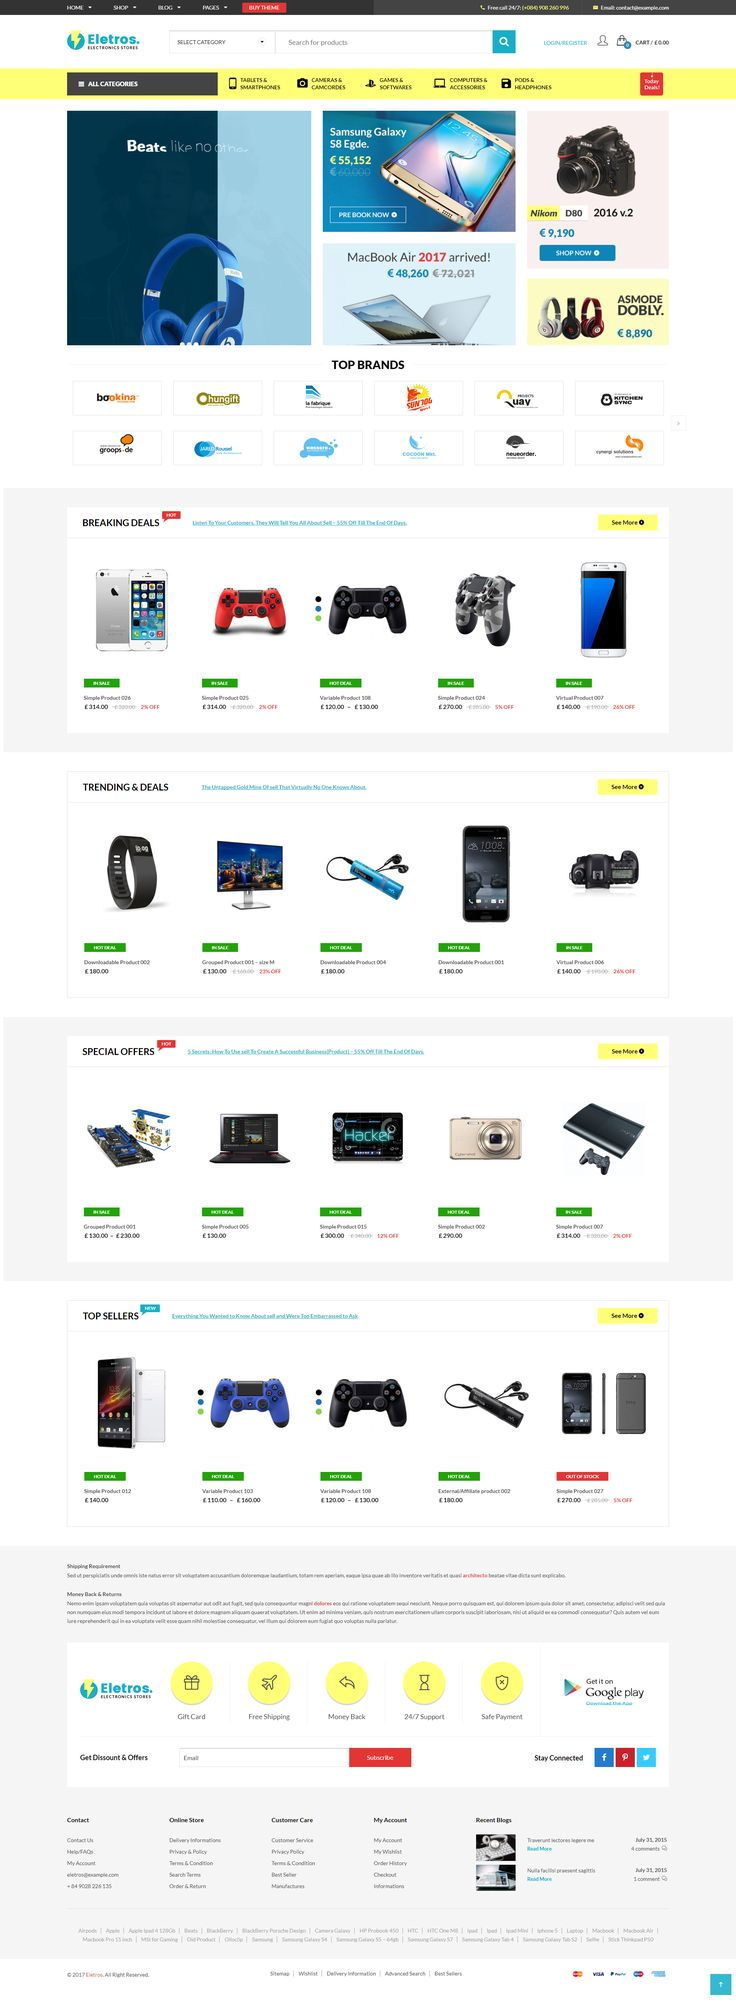 Heavy, bulky electronic stores of the past are gone forever. From now on you can build a cutting-edge eCommerce shop without a hassle; and sell computers, smartphones, tablets, affiliate #websites and anything else with the help of this responsiveVG Eletros – Electronics Store WooCommerce Themewith clean multipurpose design. It is built for #WordPress and #WooCommerce, which means it is much more than just a regular #eCommerce template. #theme